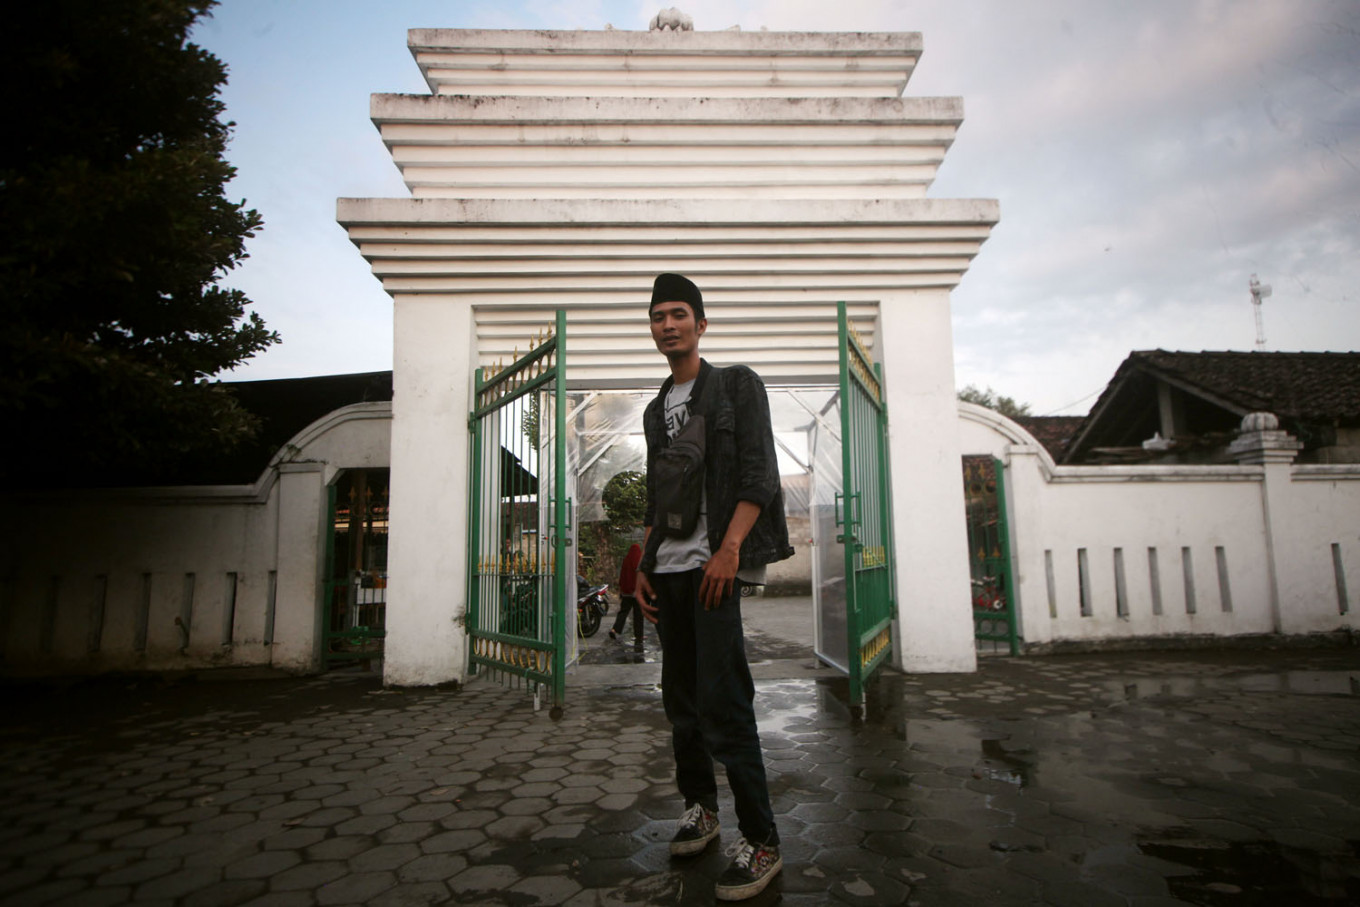 A worshipper stands in front of Pathok Negoro Mosque. JP/Boy T Harjanto